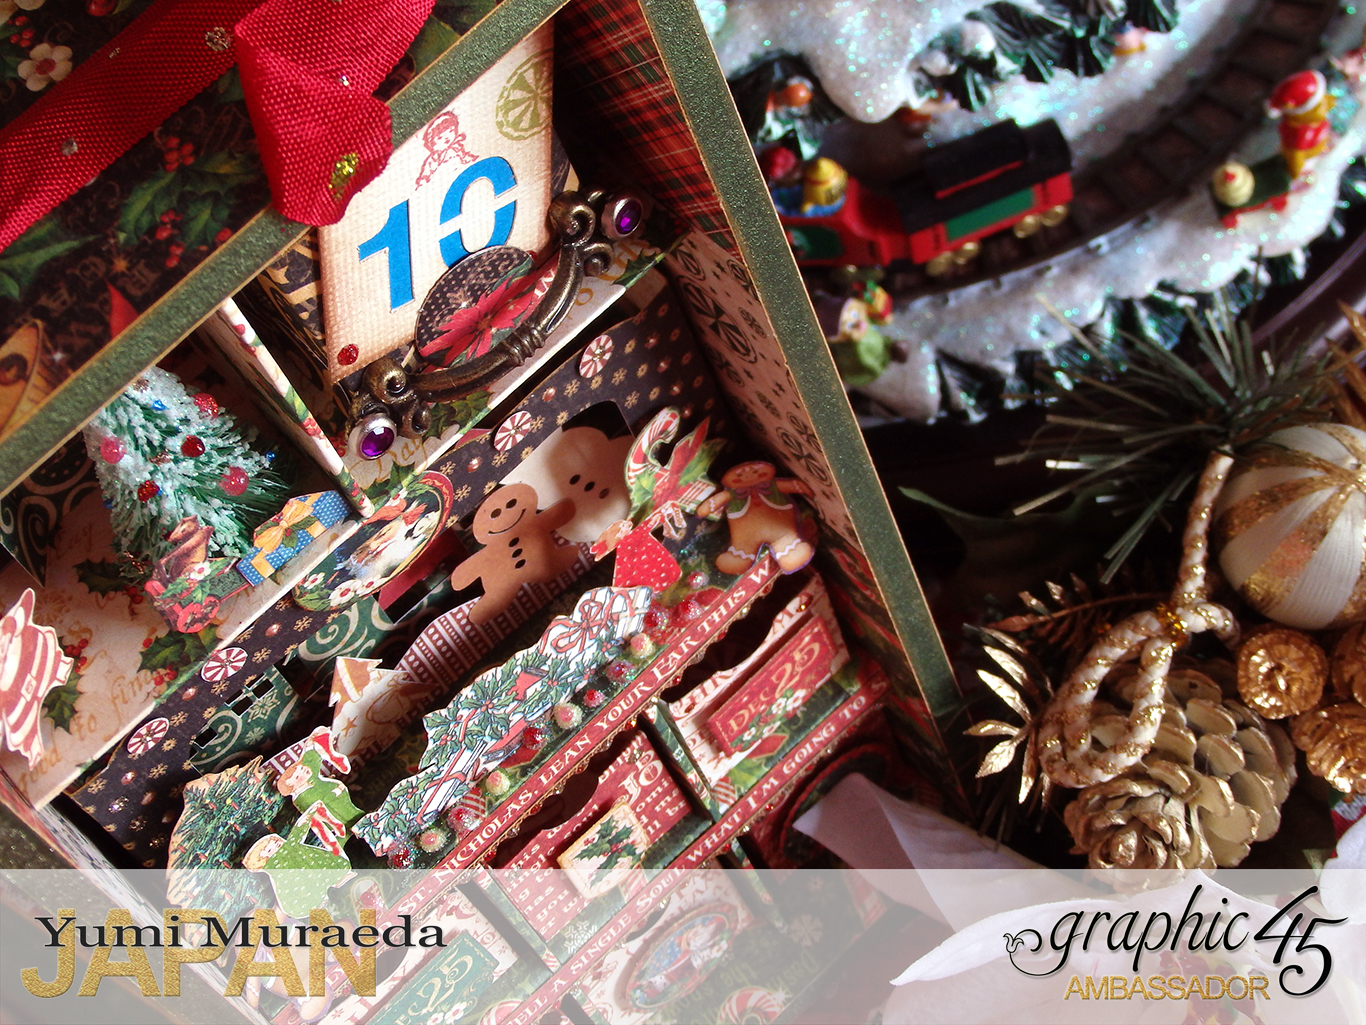 yuyu3xmasboxdesignbyyumimuraedaproductbygraphic45photo8.jpg